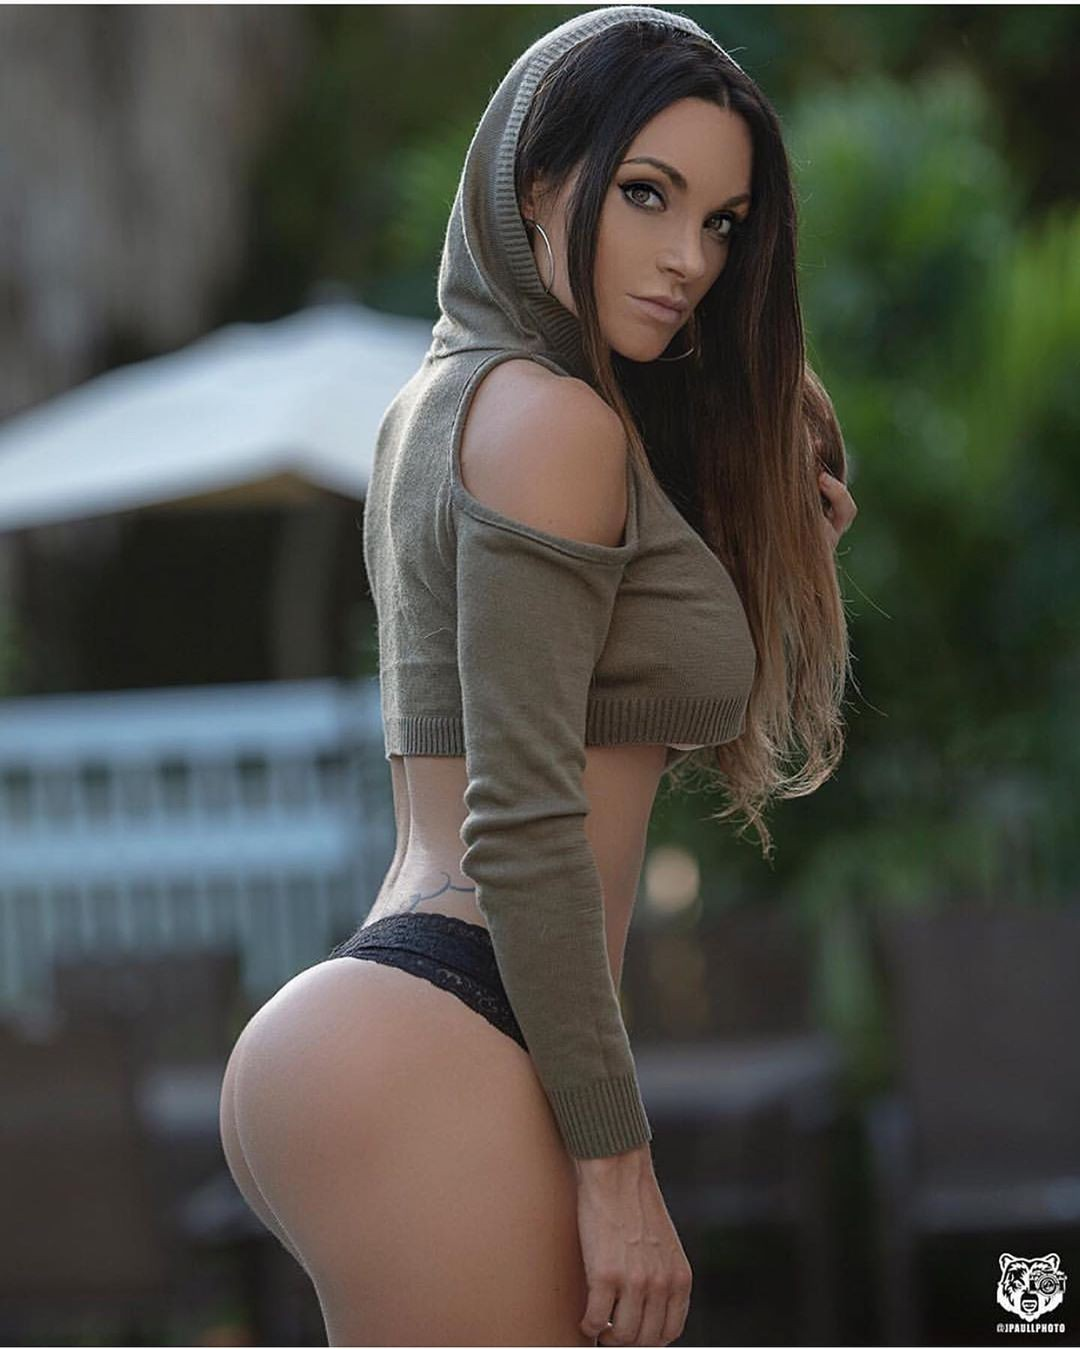 Nienna Jade best photoshoot ideas, girls instagram photos, female thighs